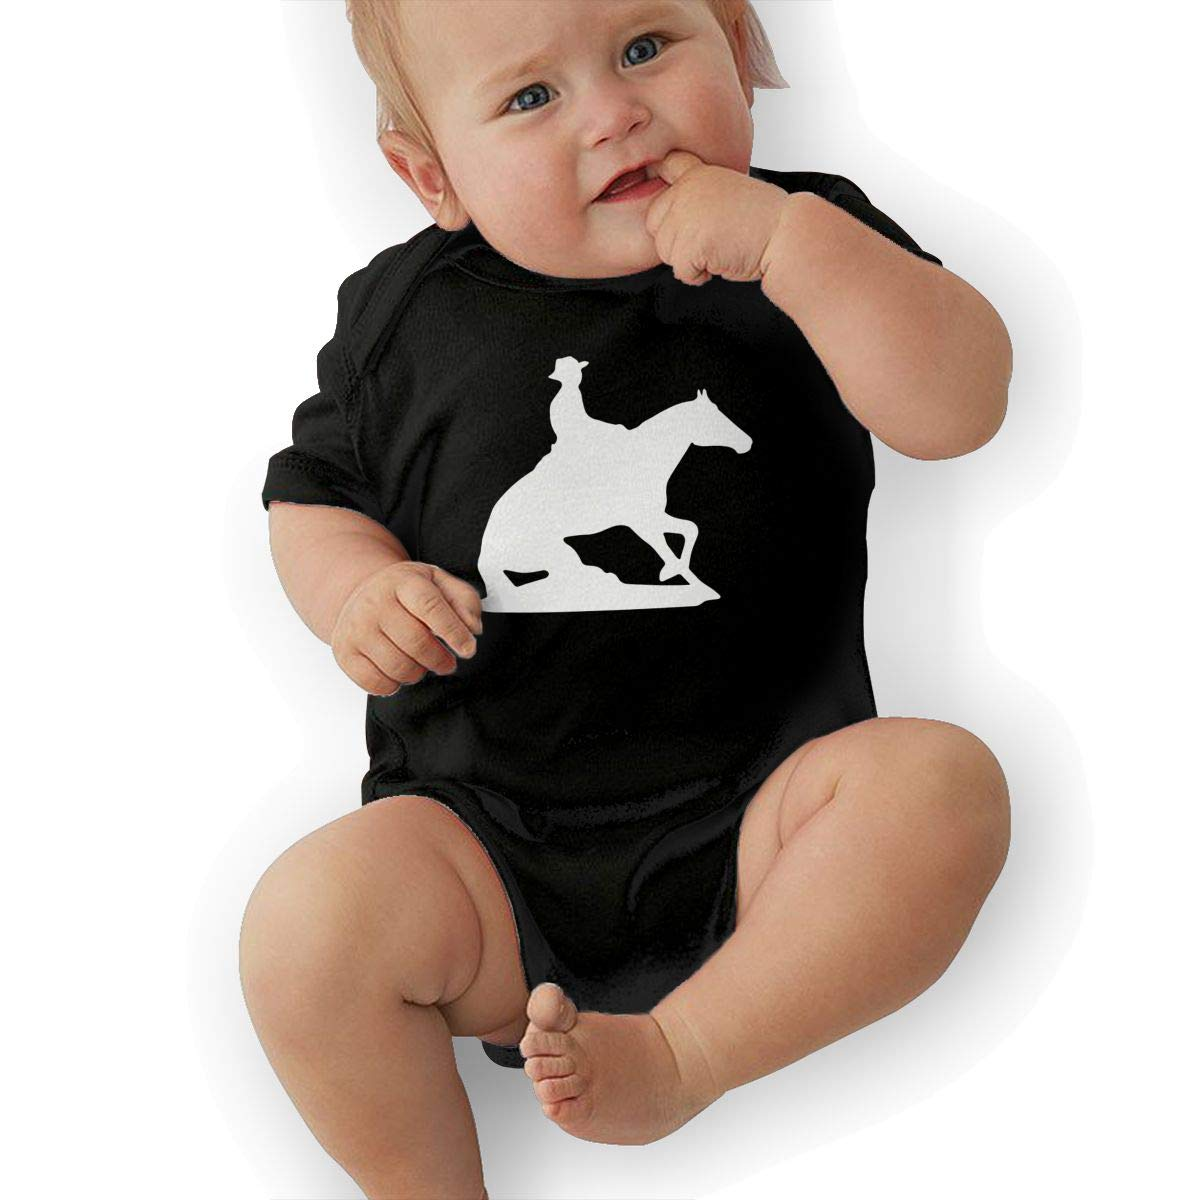 Reining Horse Silhouette Toddler Baby Girl Boy Romper Jumpsuit Short Sleeved Bodysuit Tops Clothes